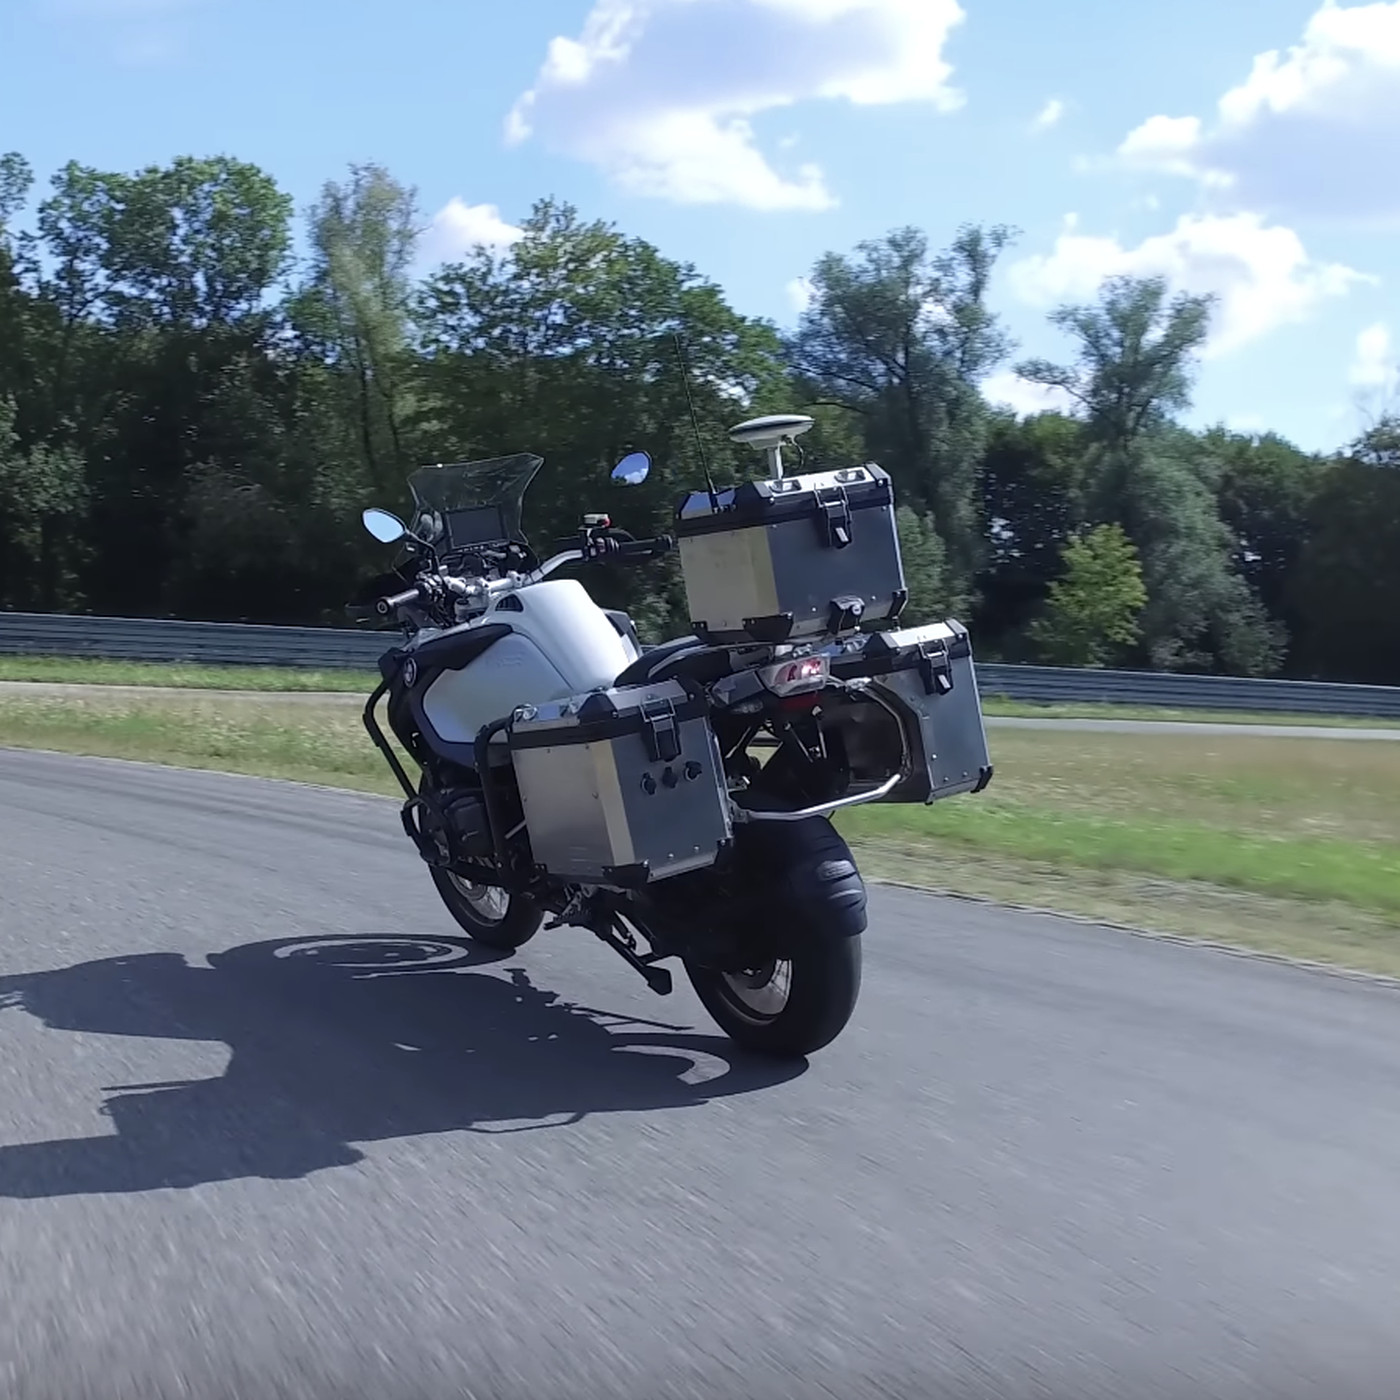 BMW made a self-driving motorcycle - The Verge